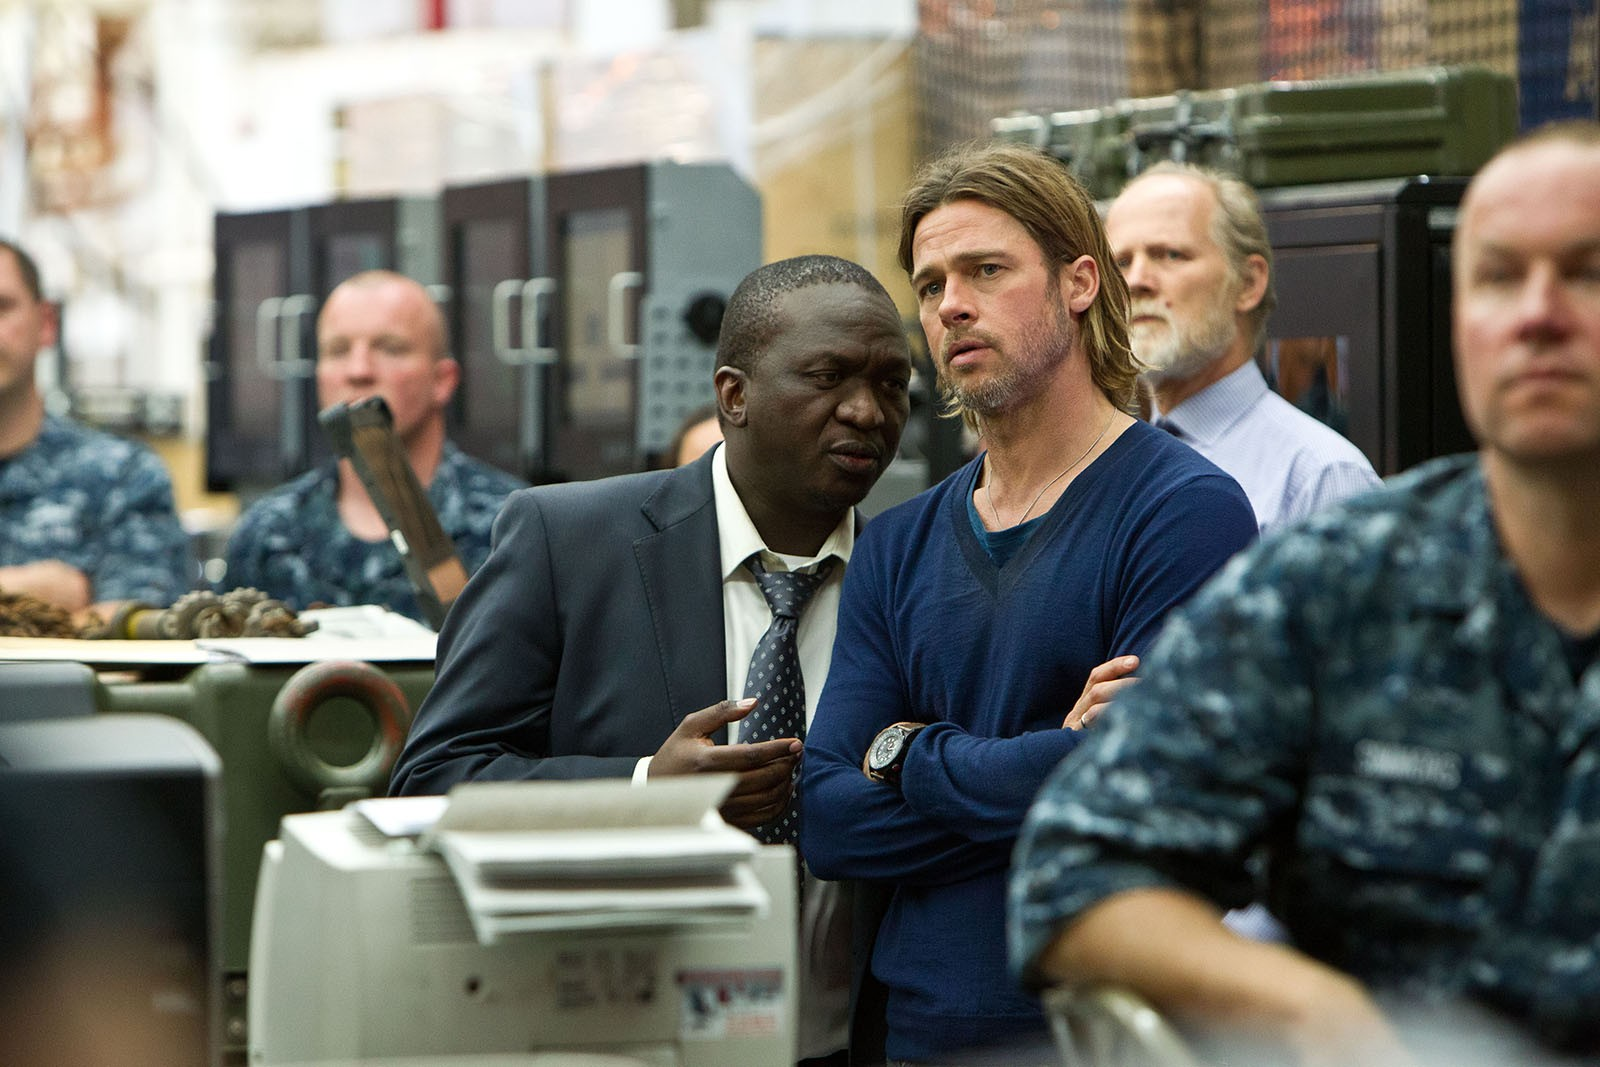 Fana Mokoena stars as Thierry and Brad Pitt stars as Gerry Lane in Paramount Pictures' World War Z (2013)